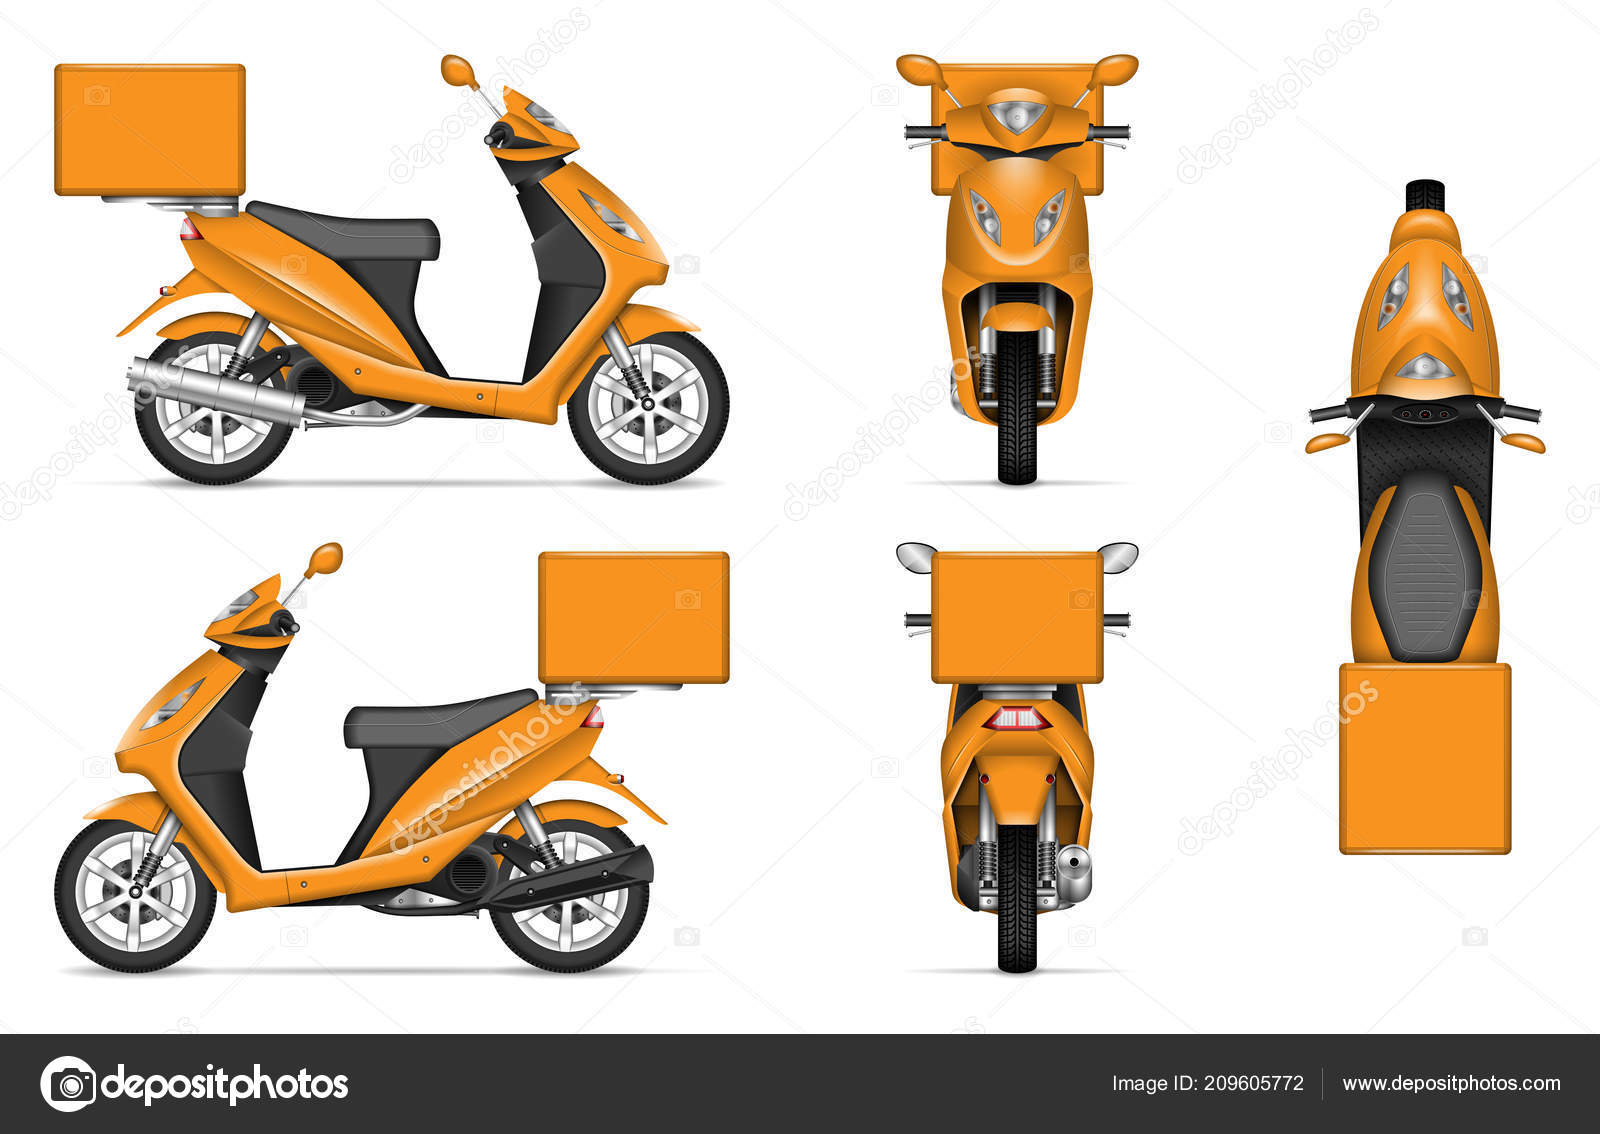 delivery scooter vector mockup white vehicle branding corporate identity view stock vector c imgvector 209605772 delivery scooter vector mockup white vehicle branding corporate identity view stock vector c imgvector 209605772